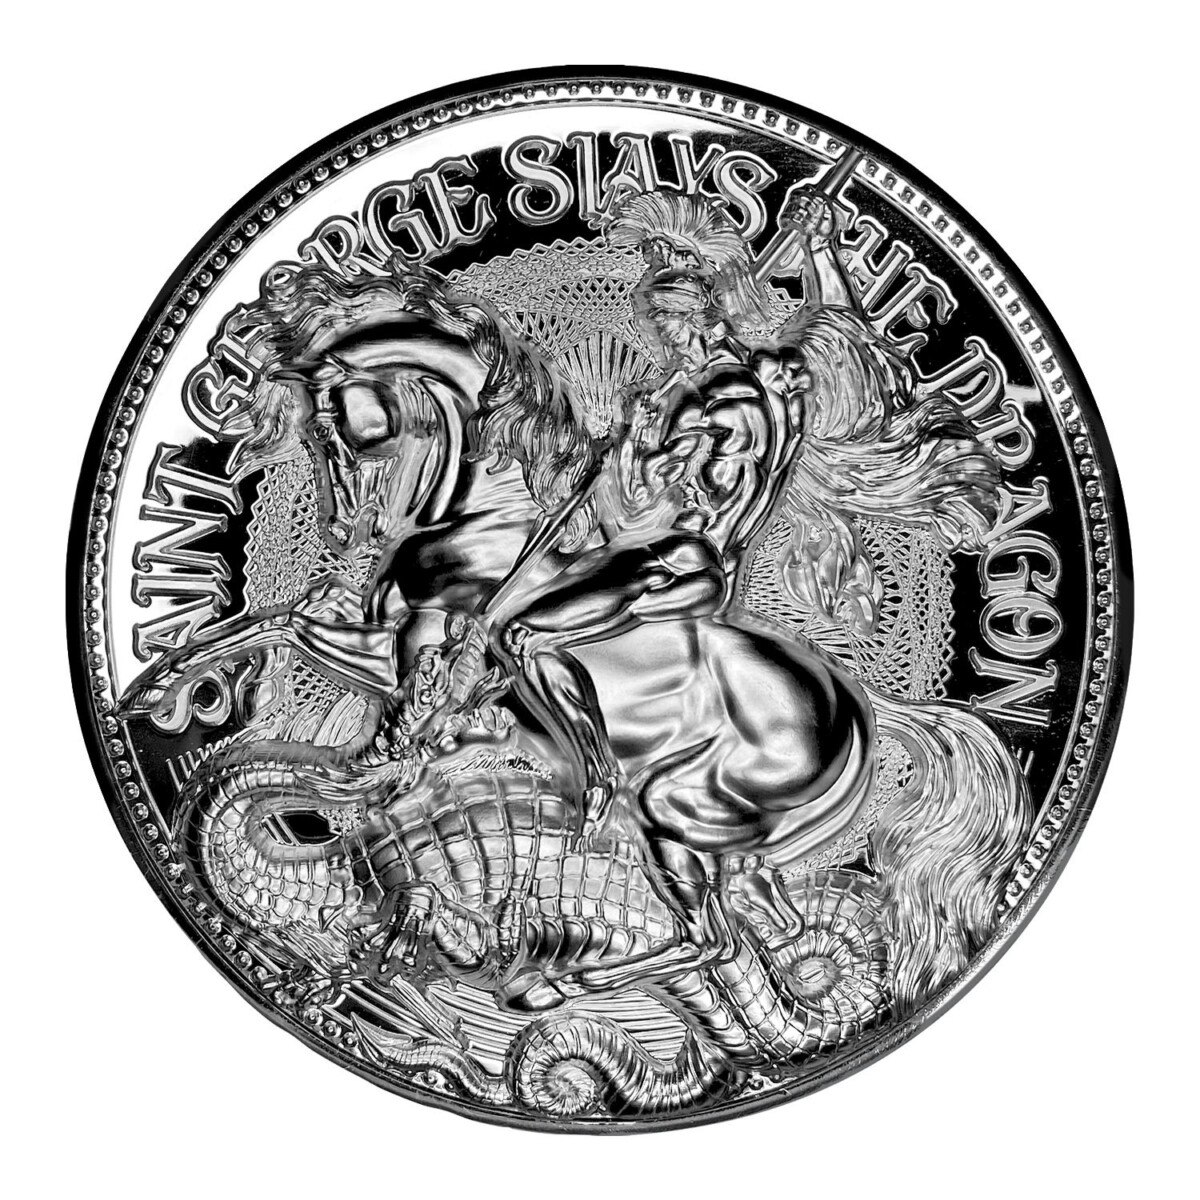 ST GEORGE SLAYS THE DRAGON 2021 Chad 2 Oz .999 Proof Silver Coin